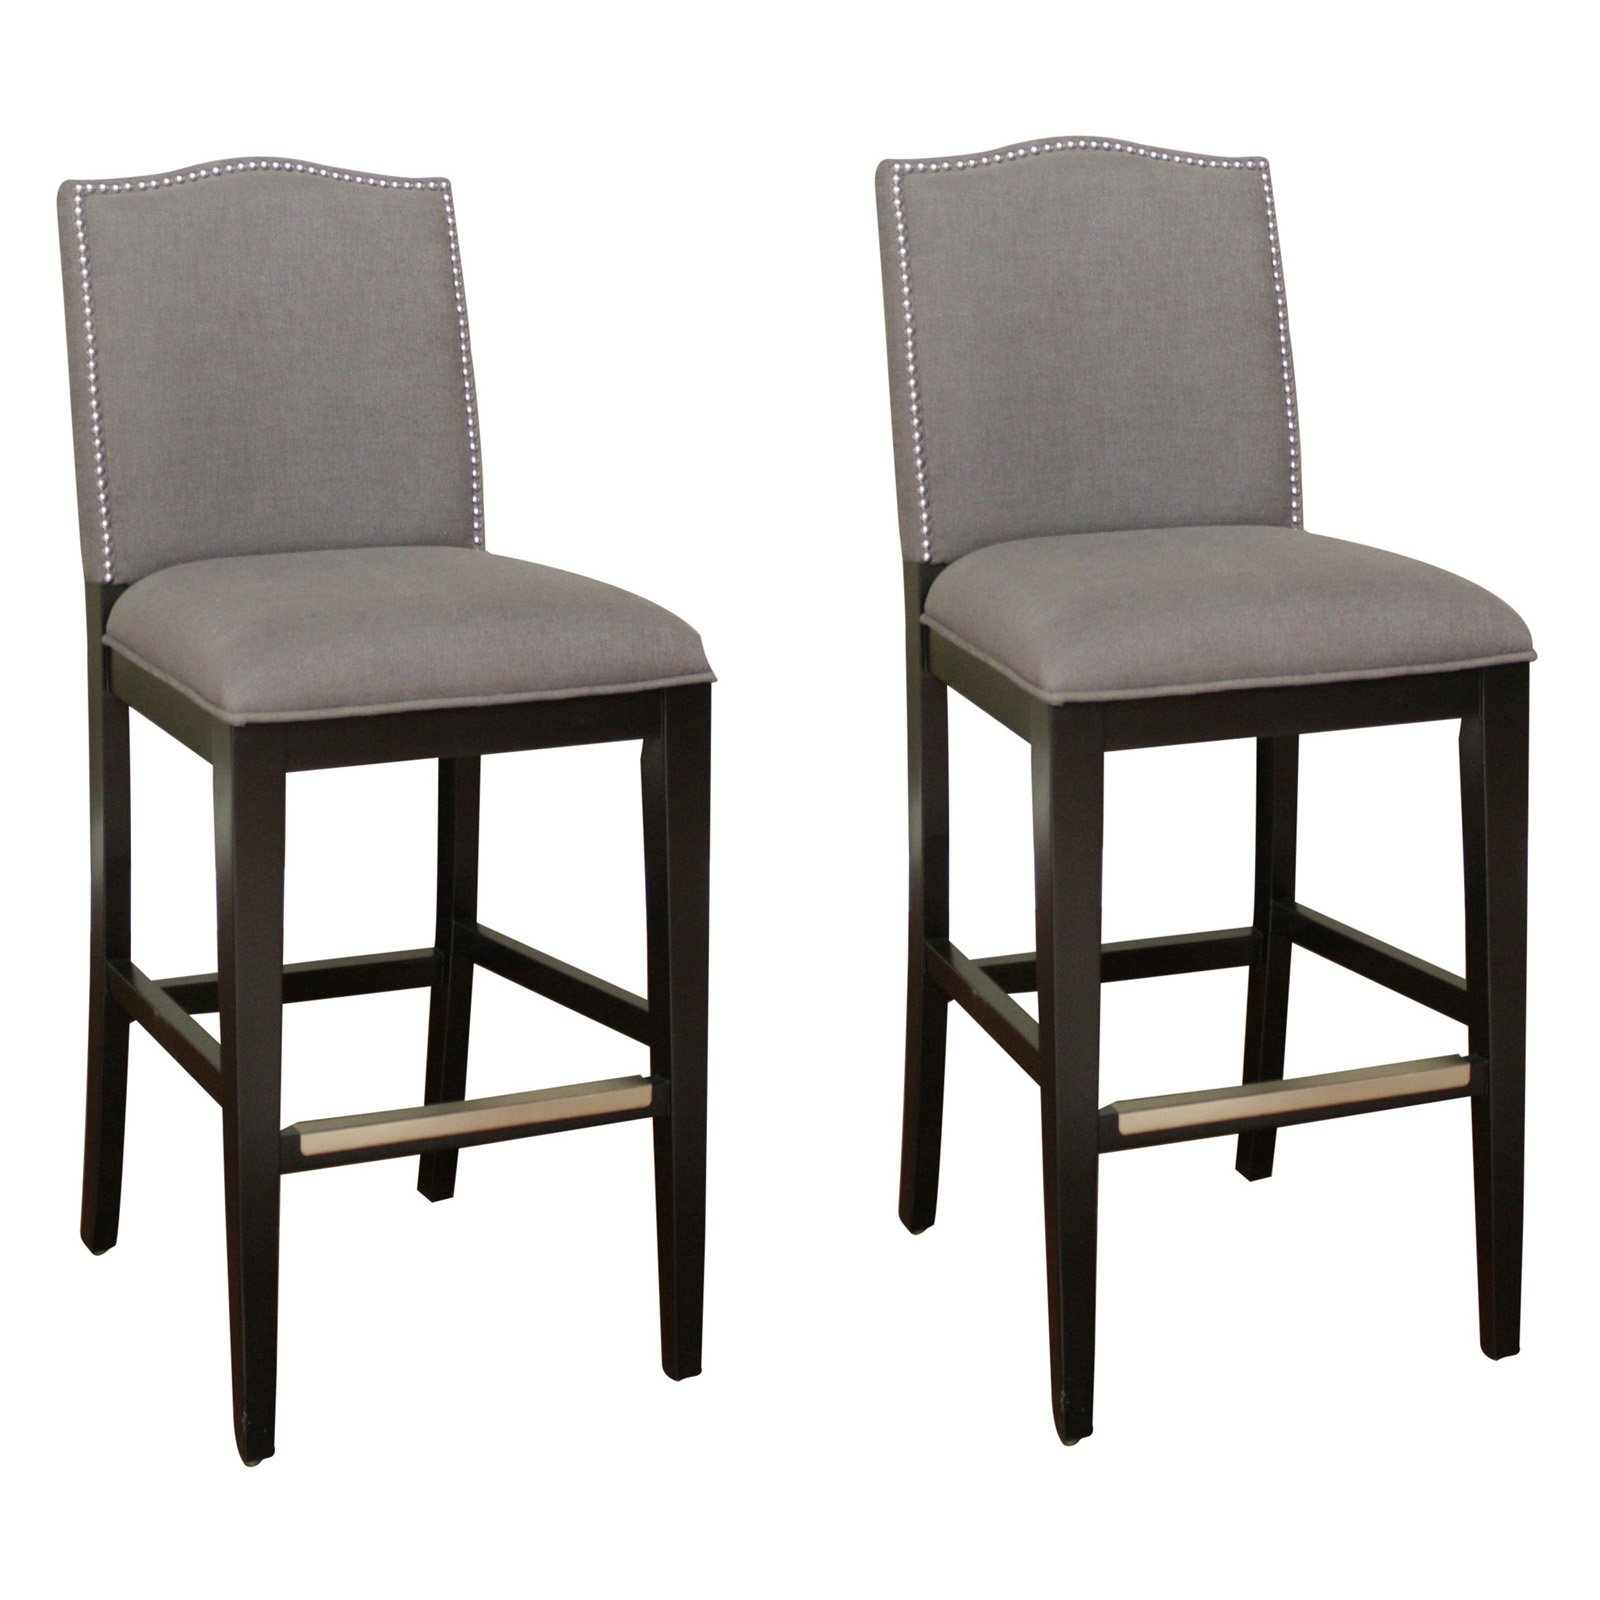 AHB Chase Bar Stool Black with Smoke Linen Upholstery Set of 2 Walmart